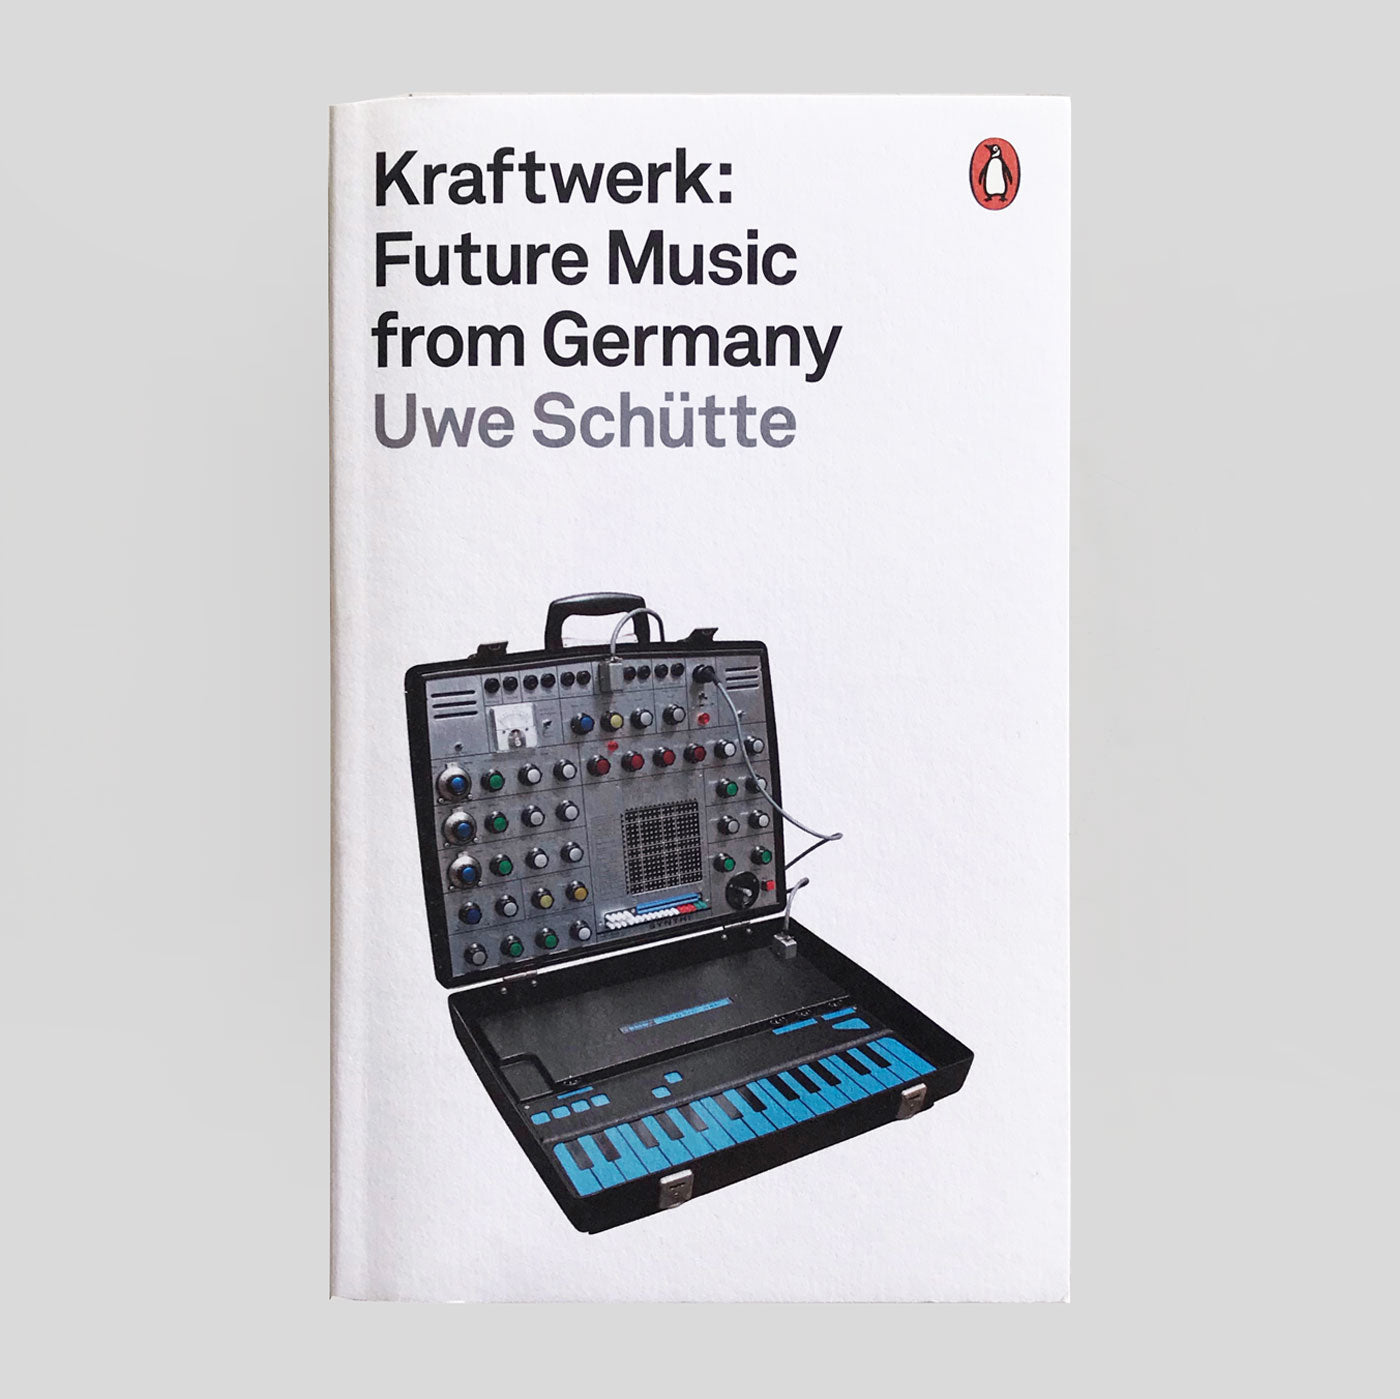 Kraftwerk: Future Music From Germany by Uwe Schütte. Colours May Vary